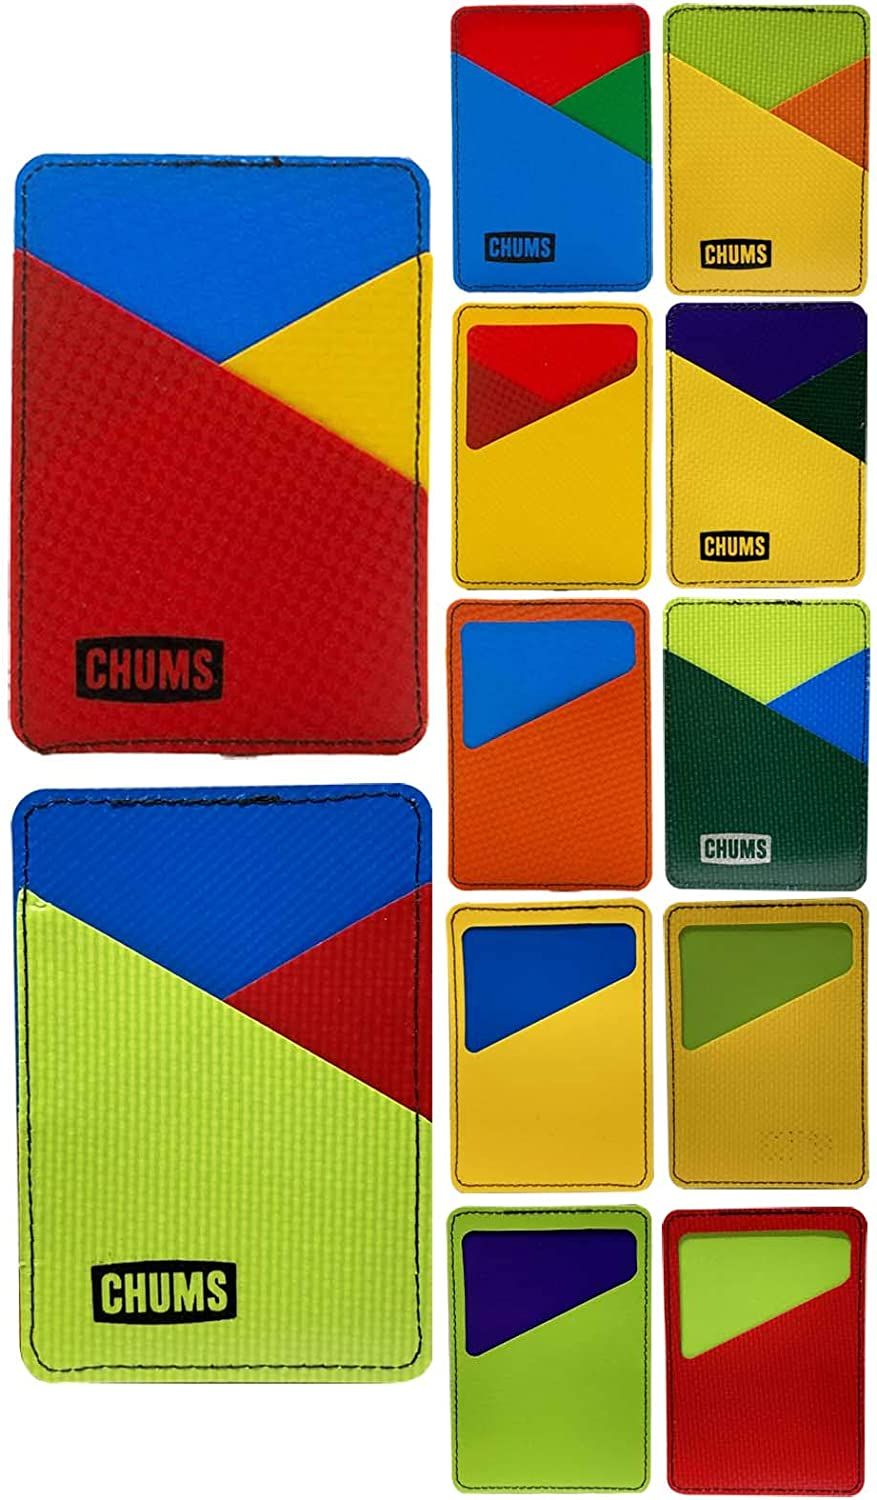 Chums Duckie Wallet Durable Slim For Front Pocket 18595700 UNIQUE